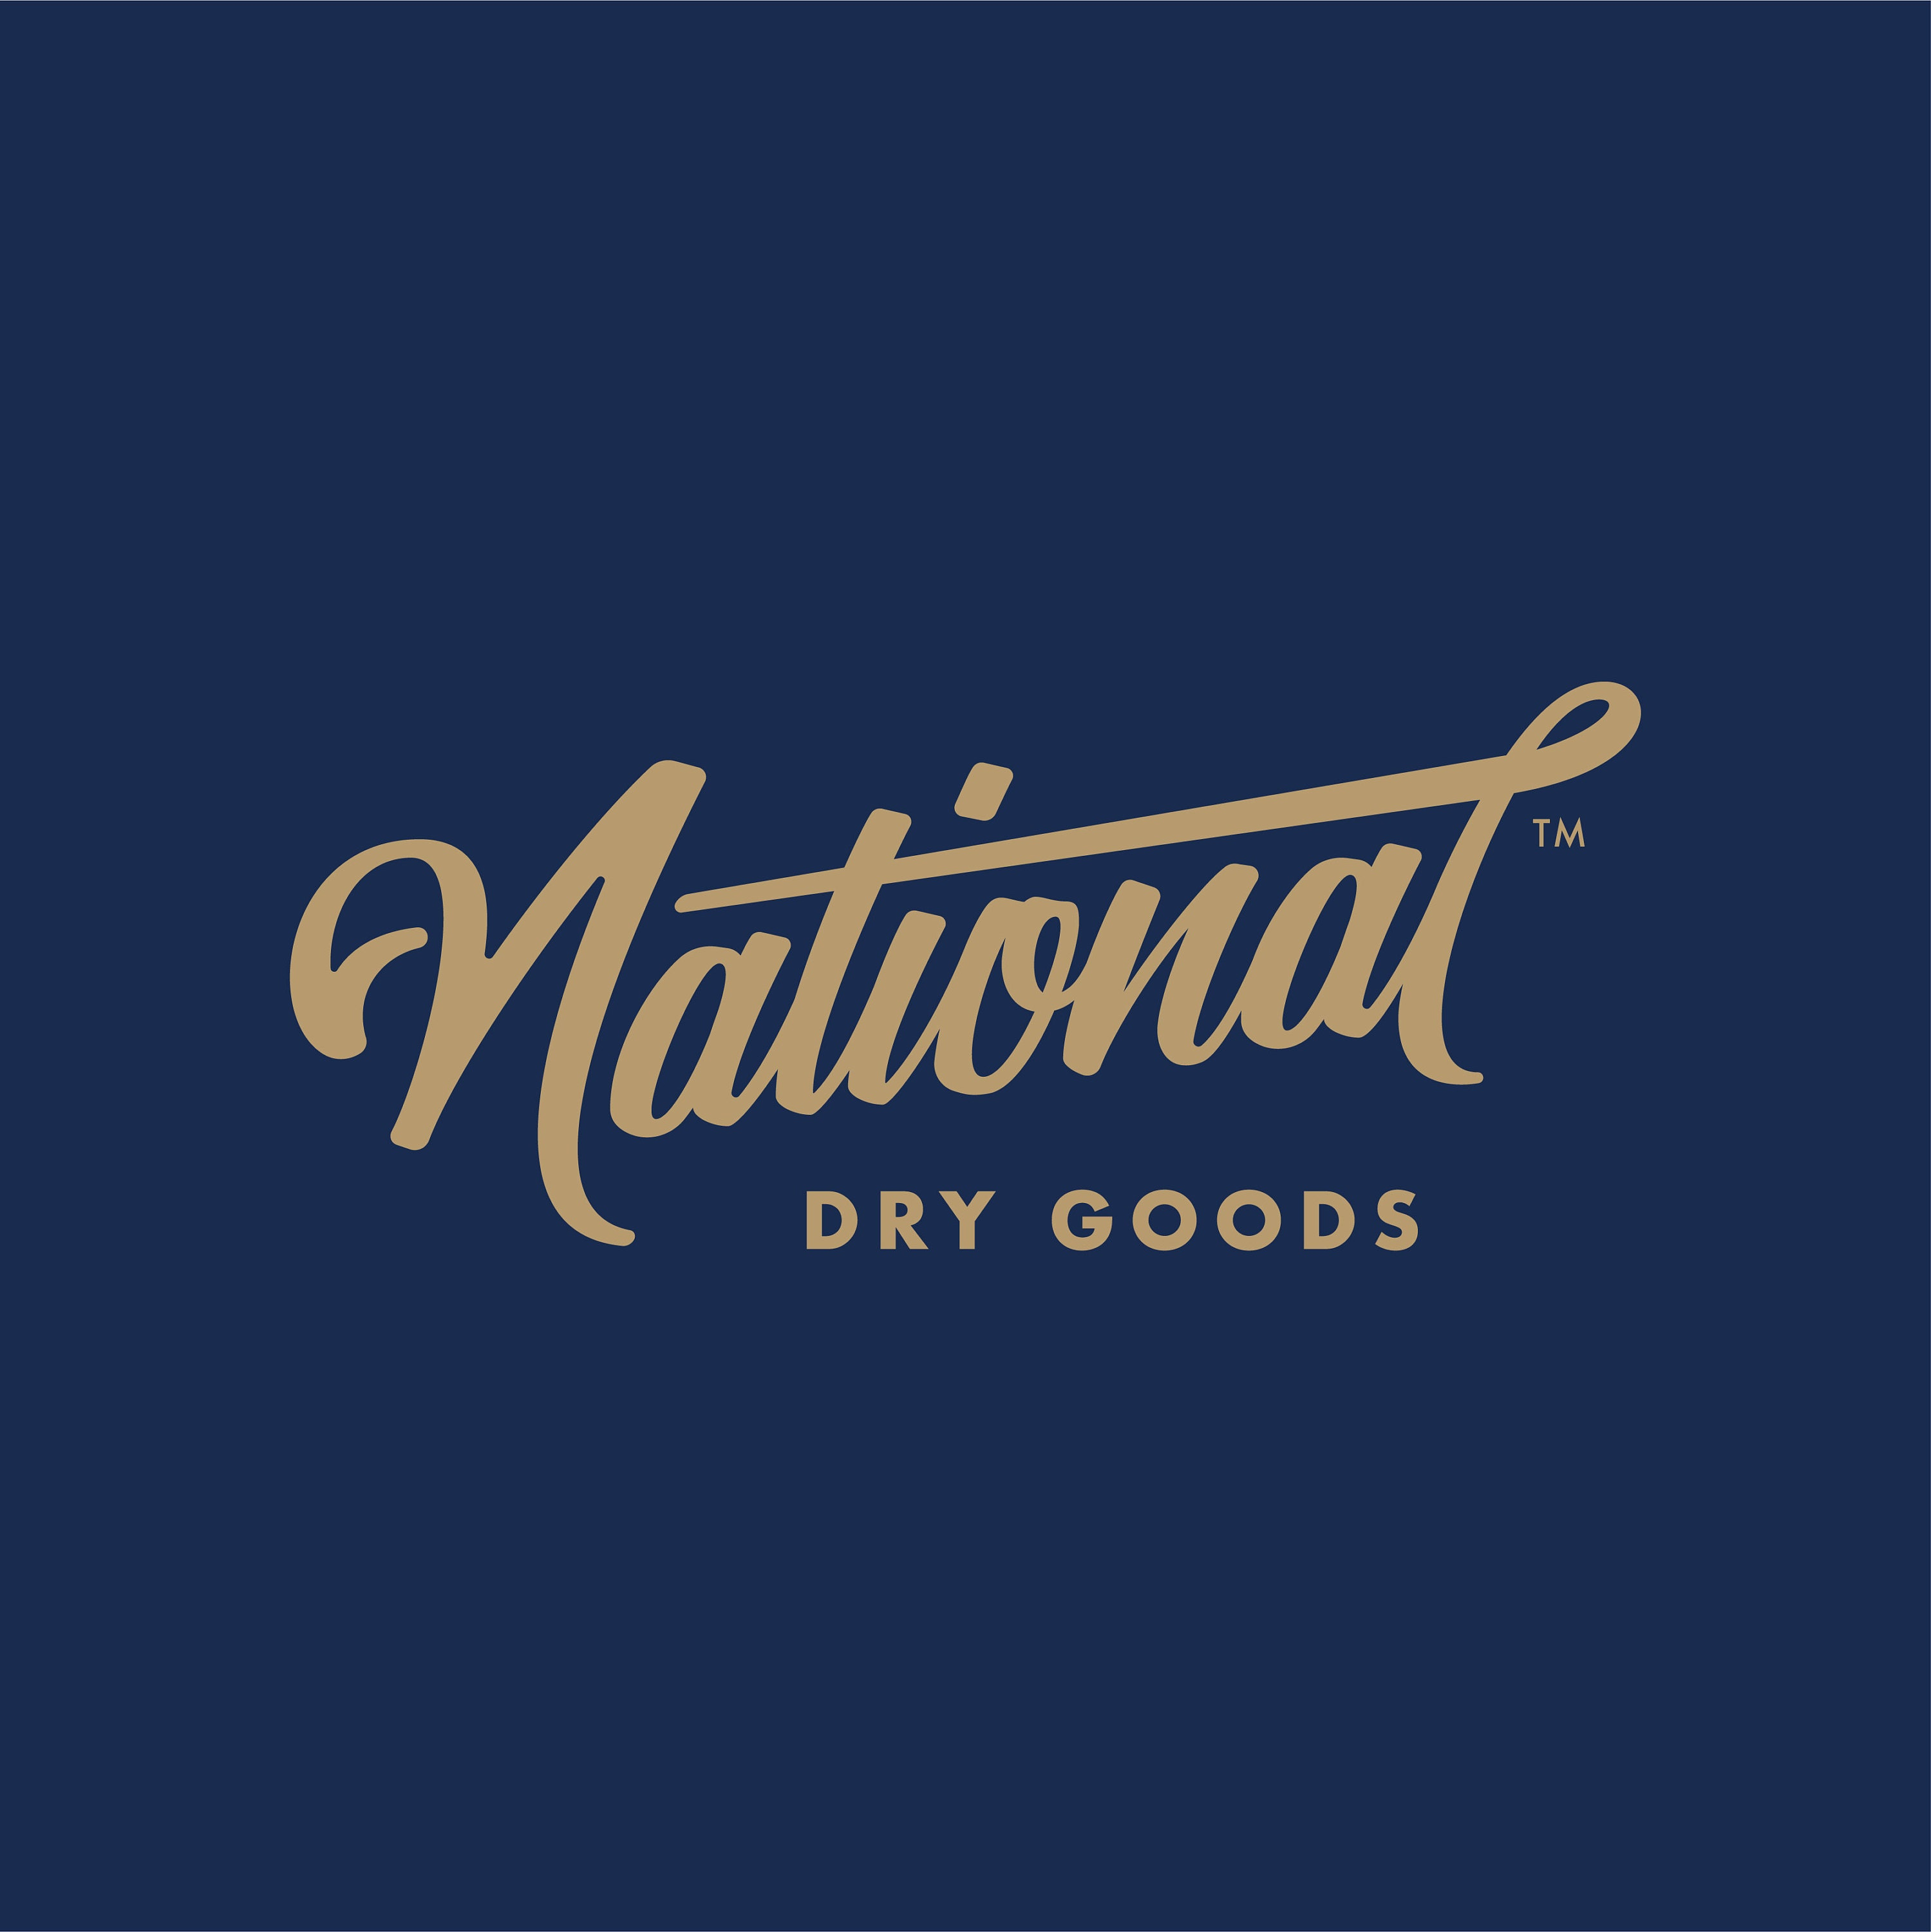 National Dry Goods 3-Piece Outdoor Camping Series Lapel Pin Gift Set